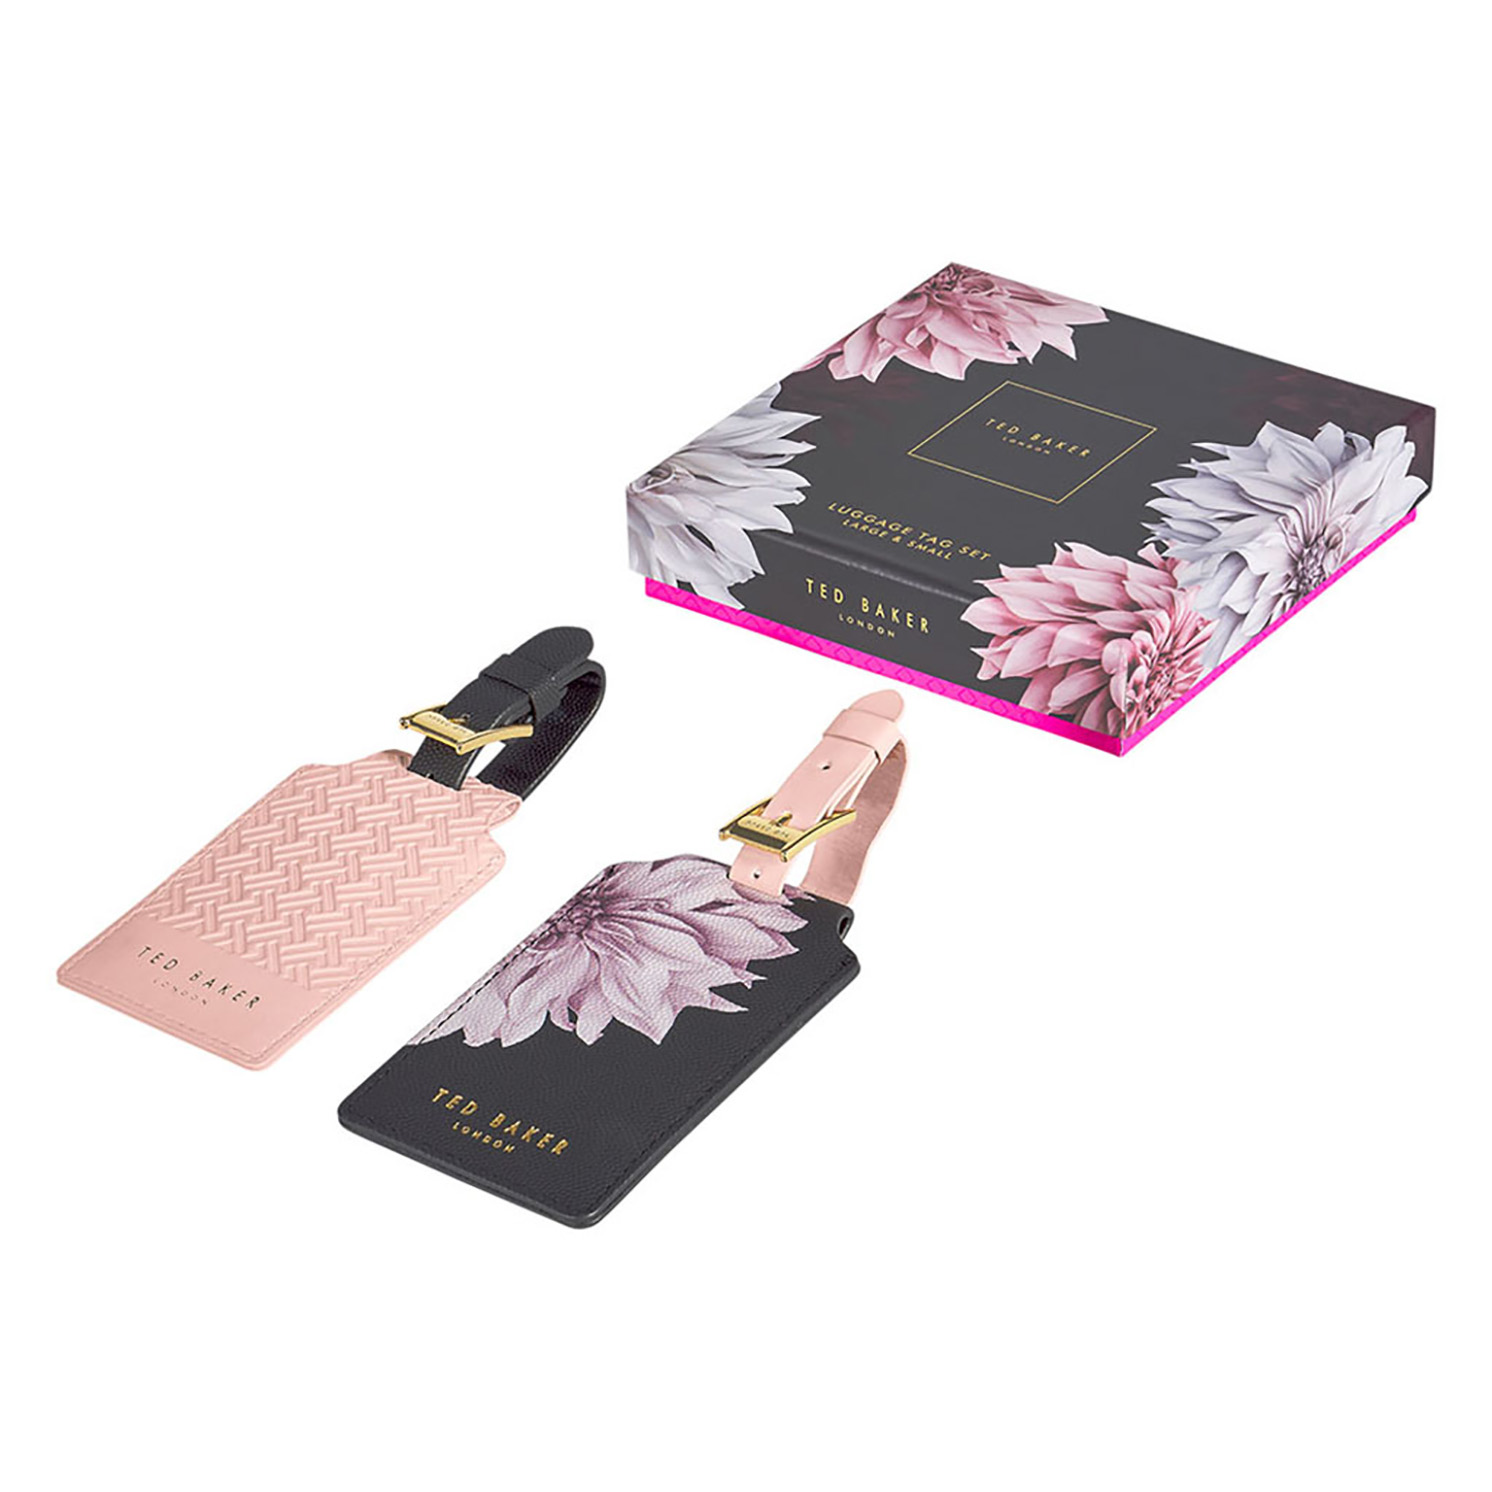 Ted Baker – Set of 2 Clove Luggage Tags in Presentation Gift Box